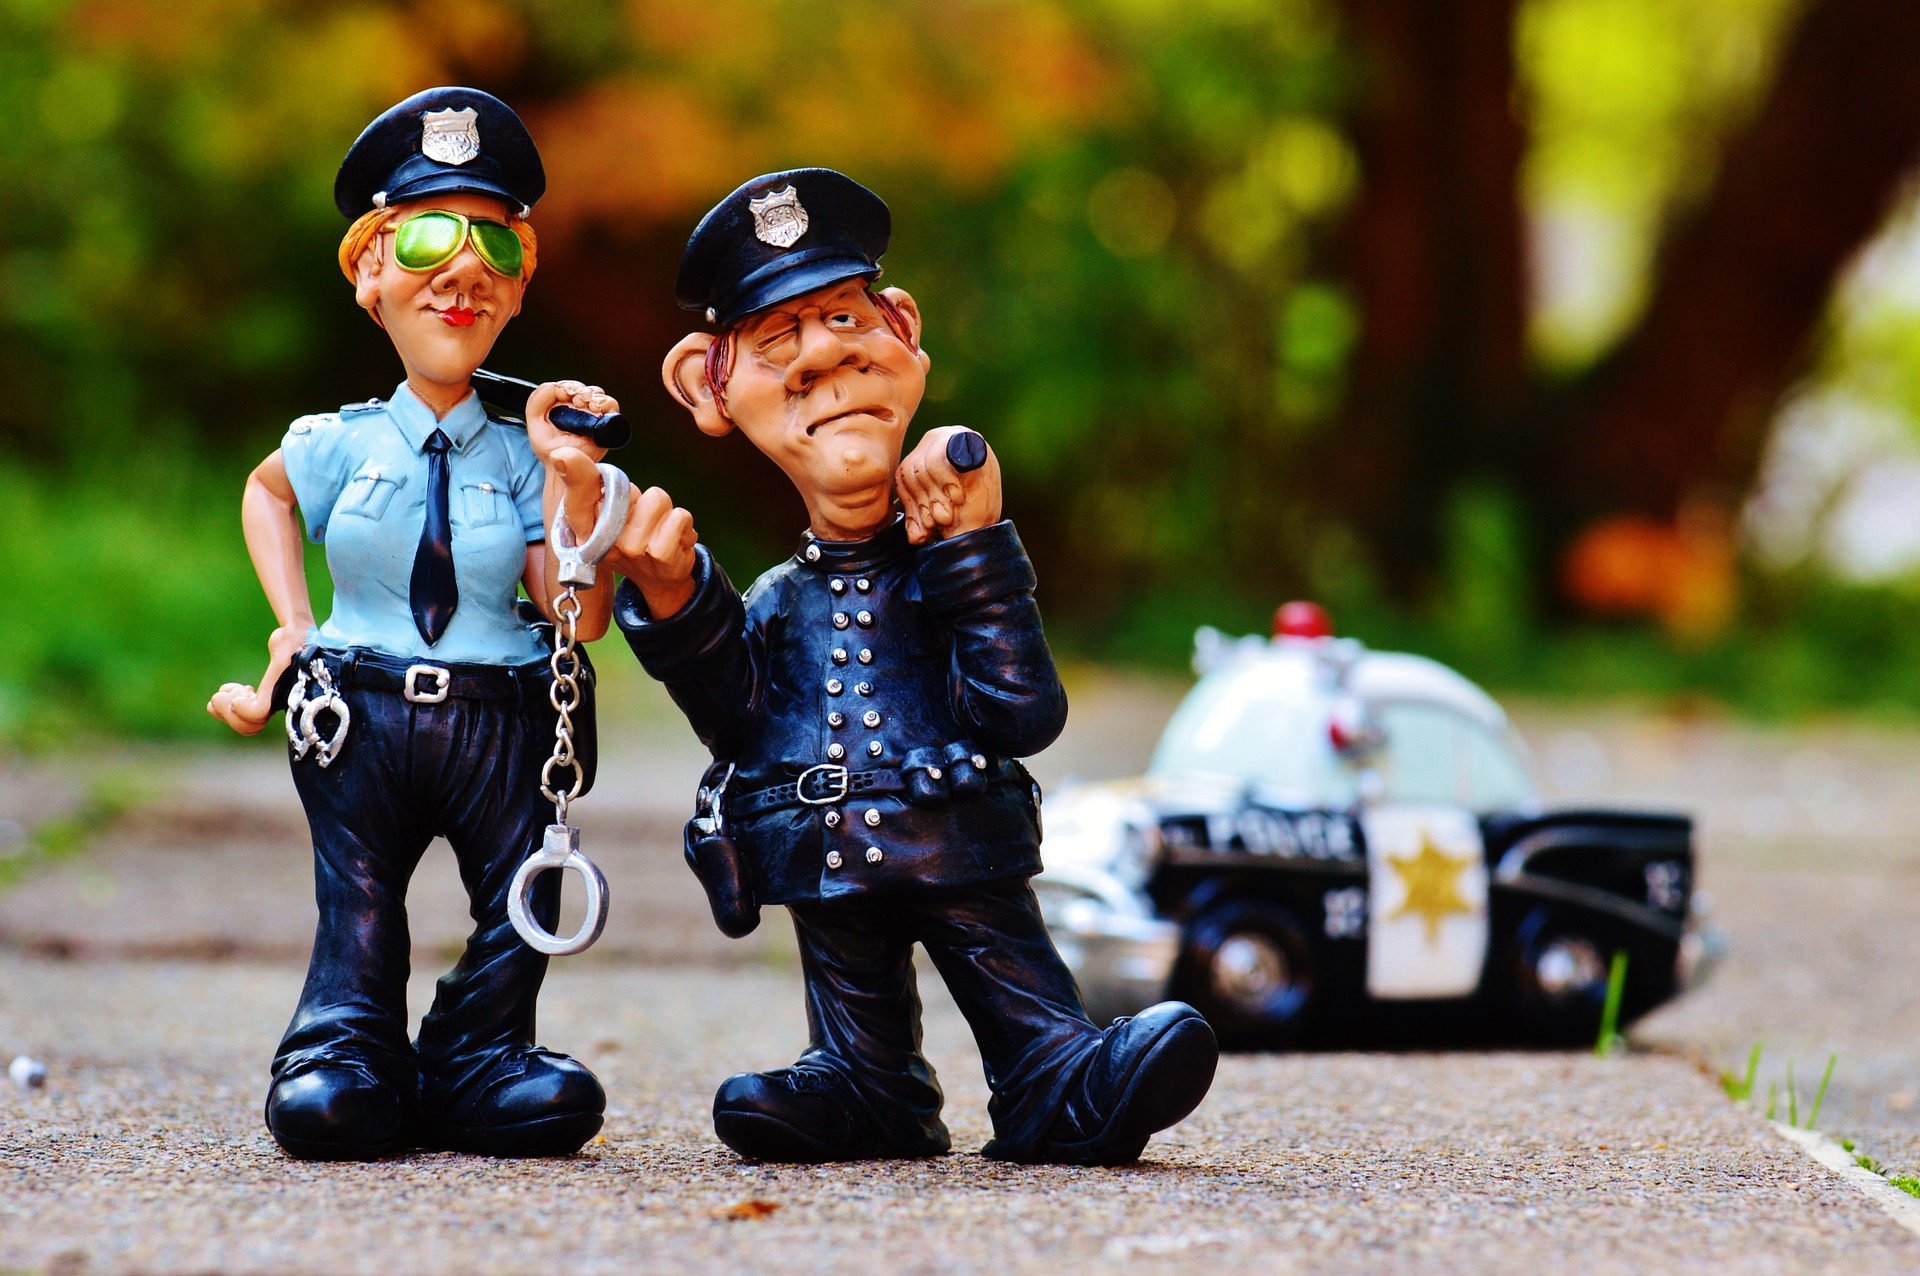 Police Powers Of Search And Seizure